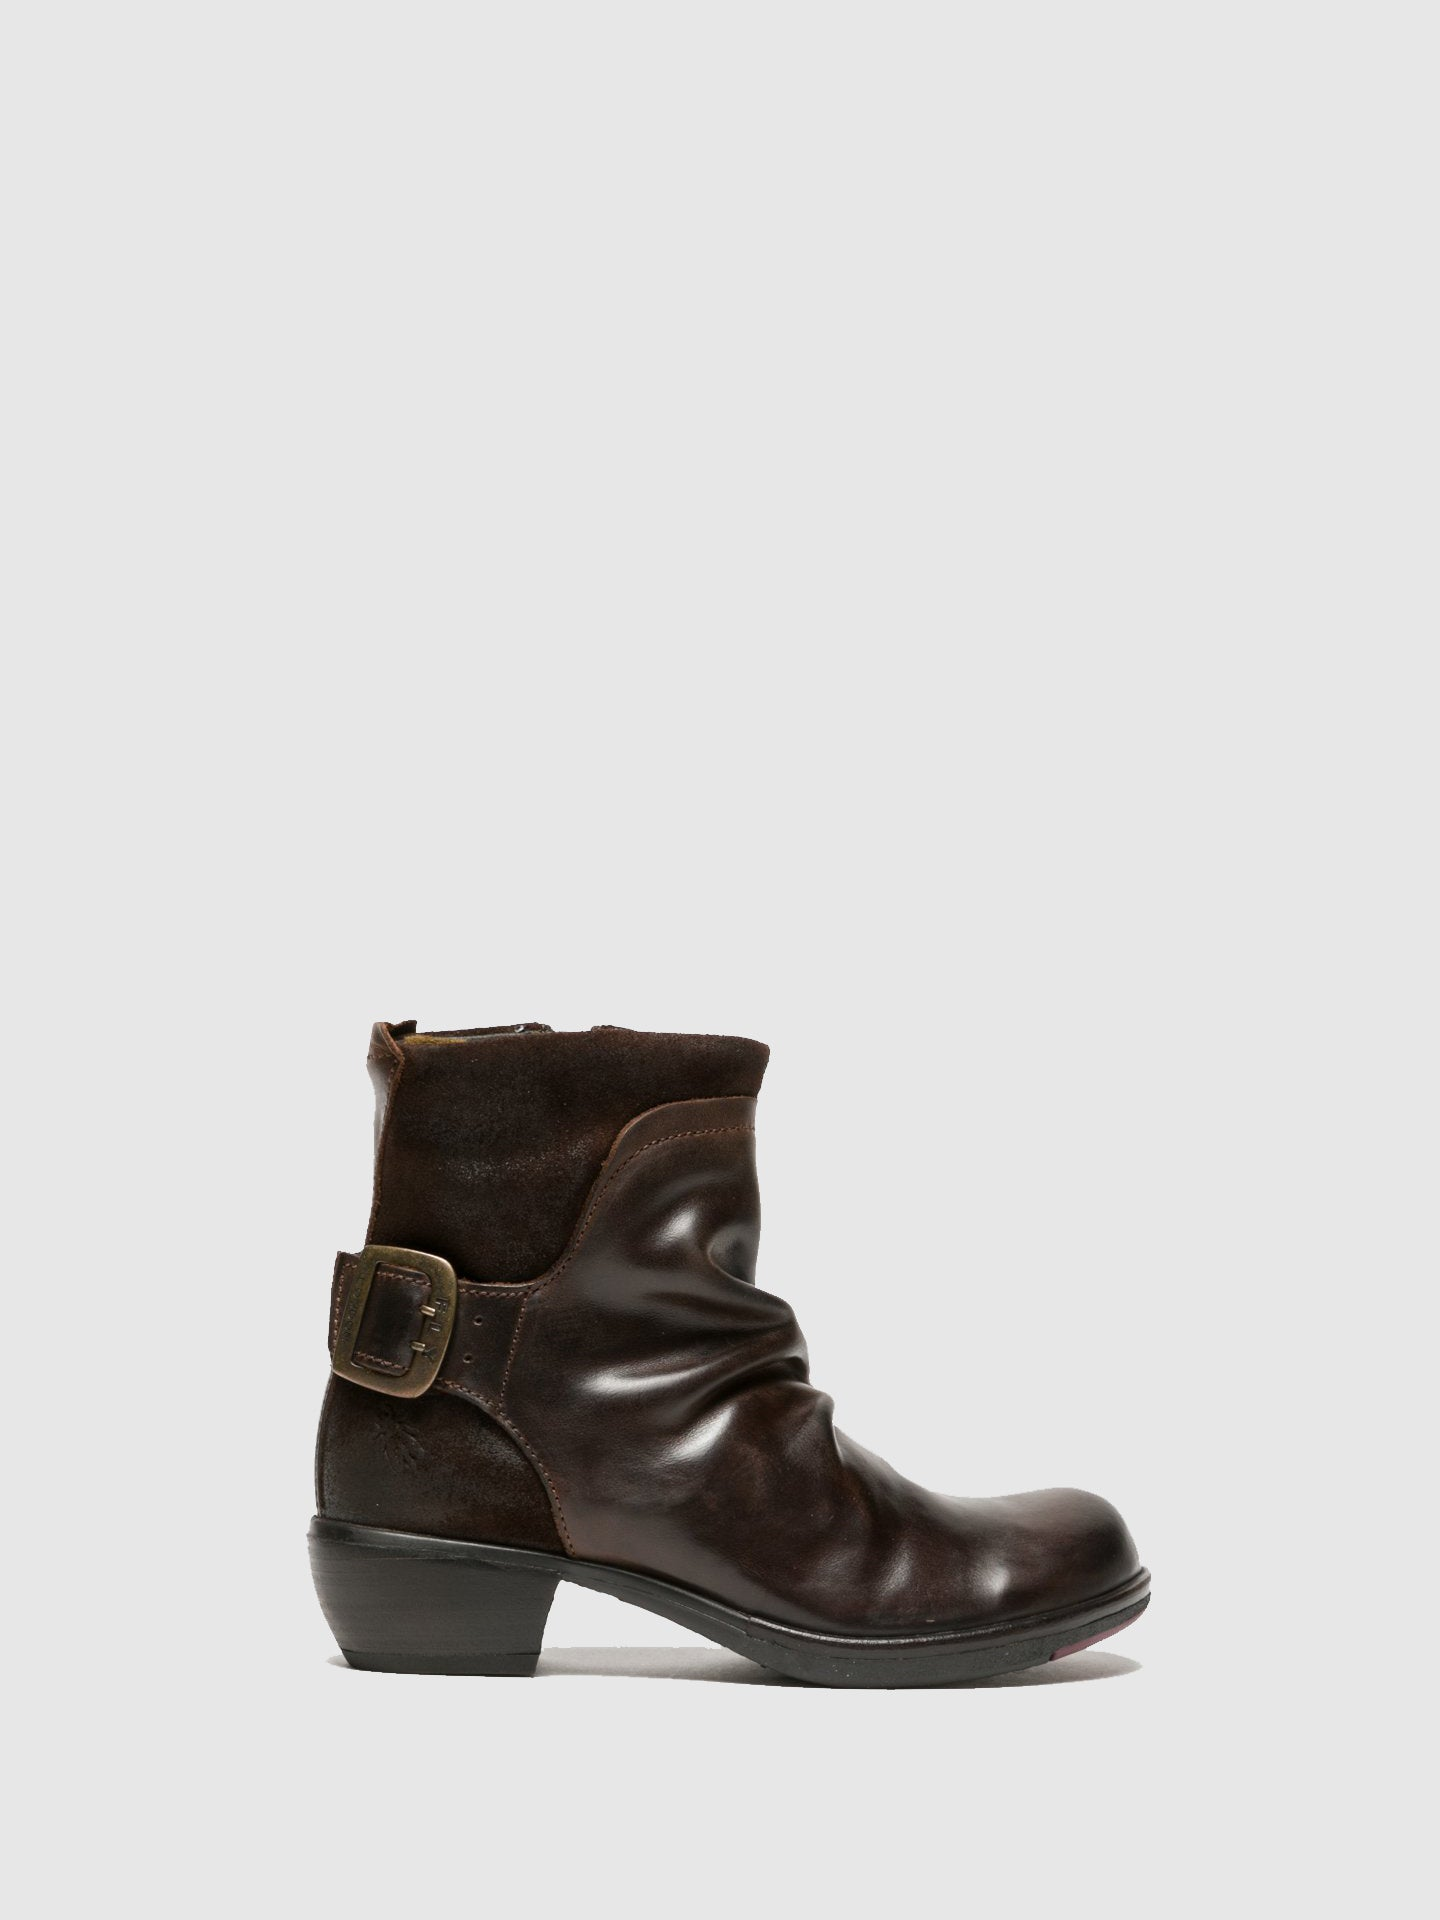 Fly London Sienna Buckle Ankle Boots